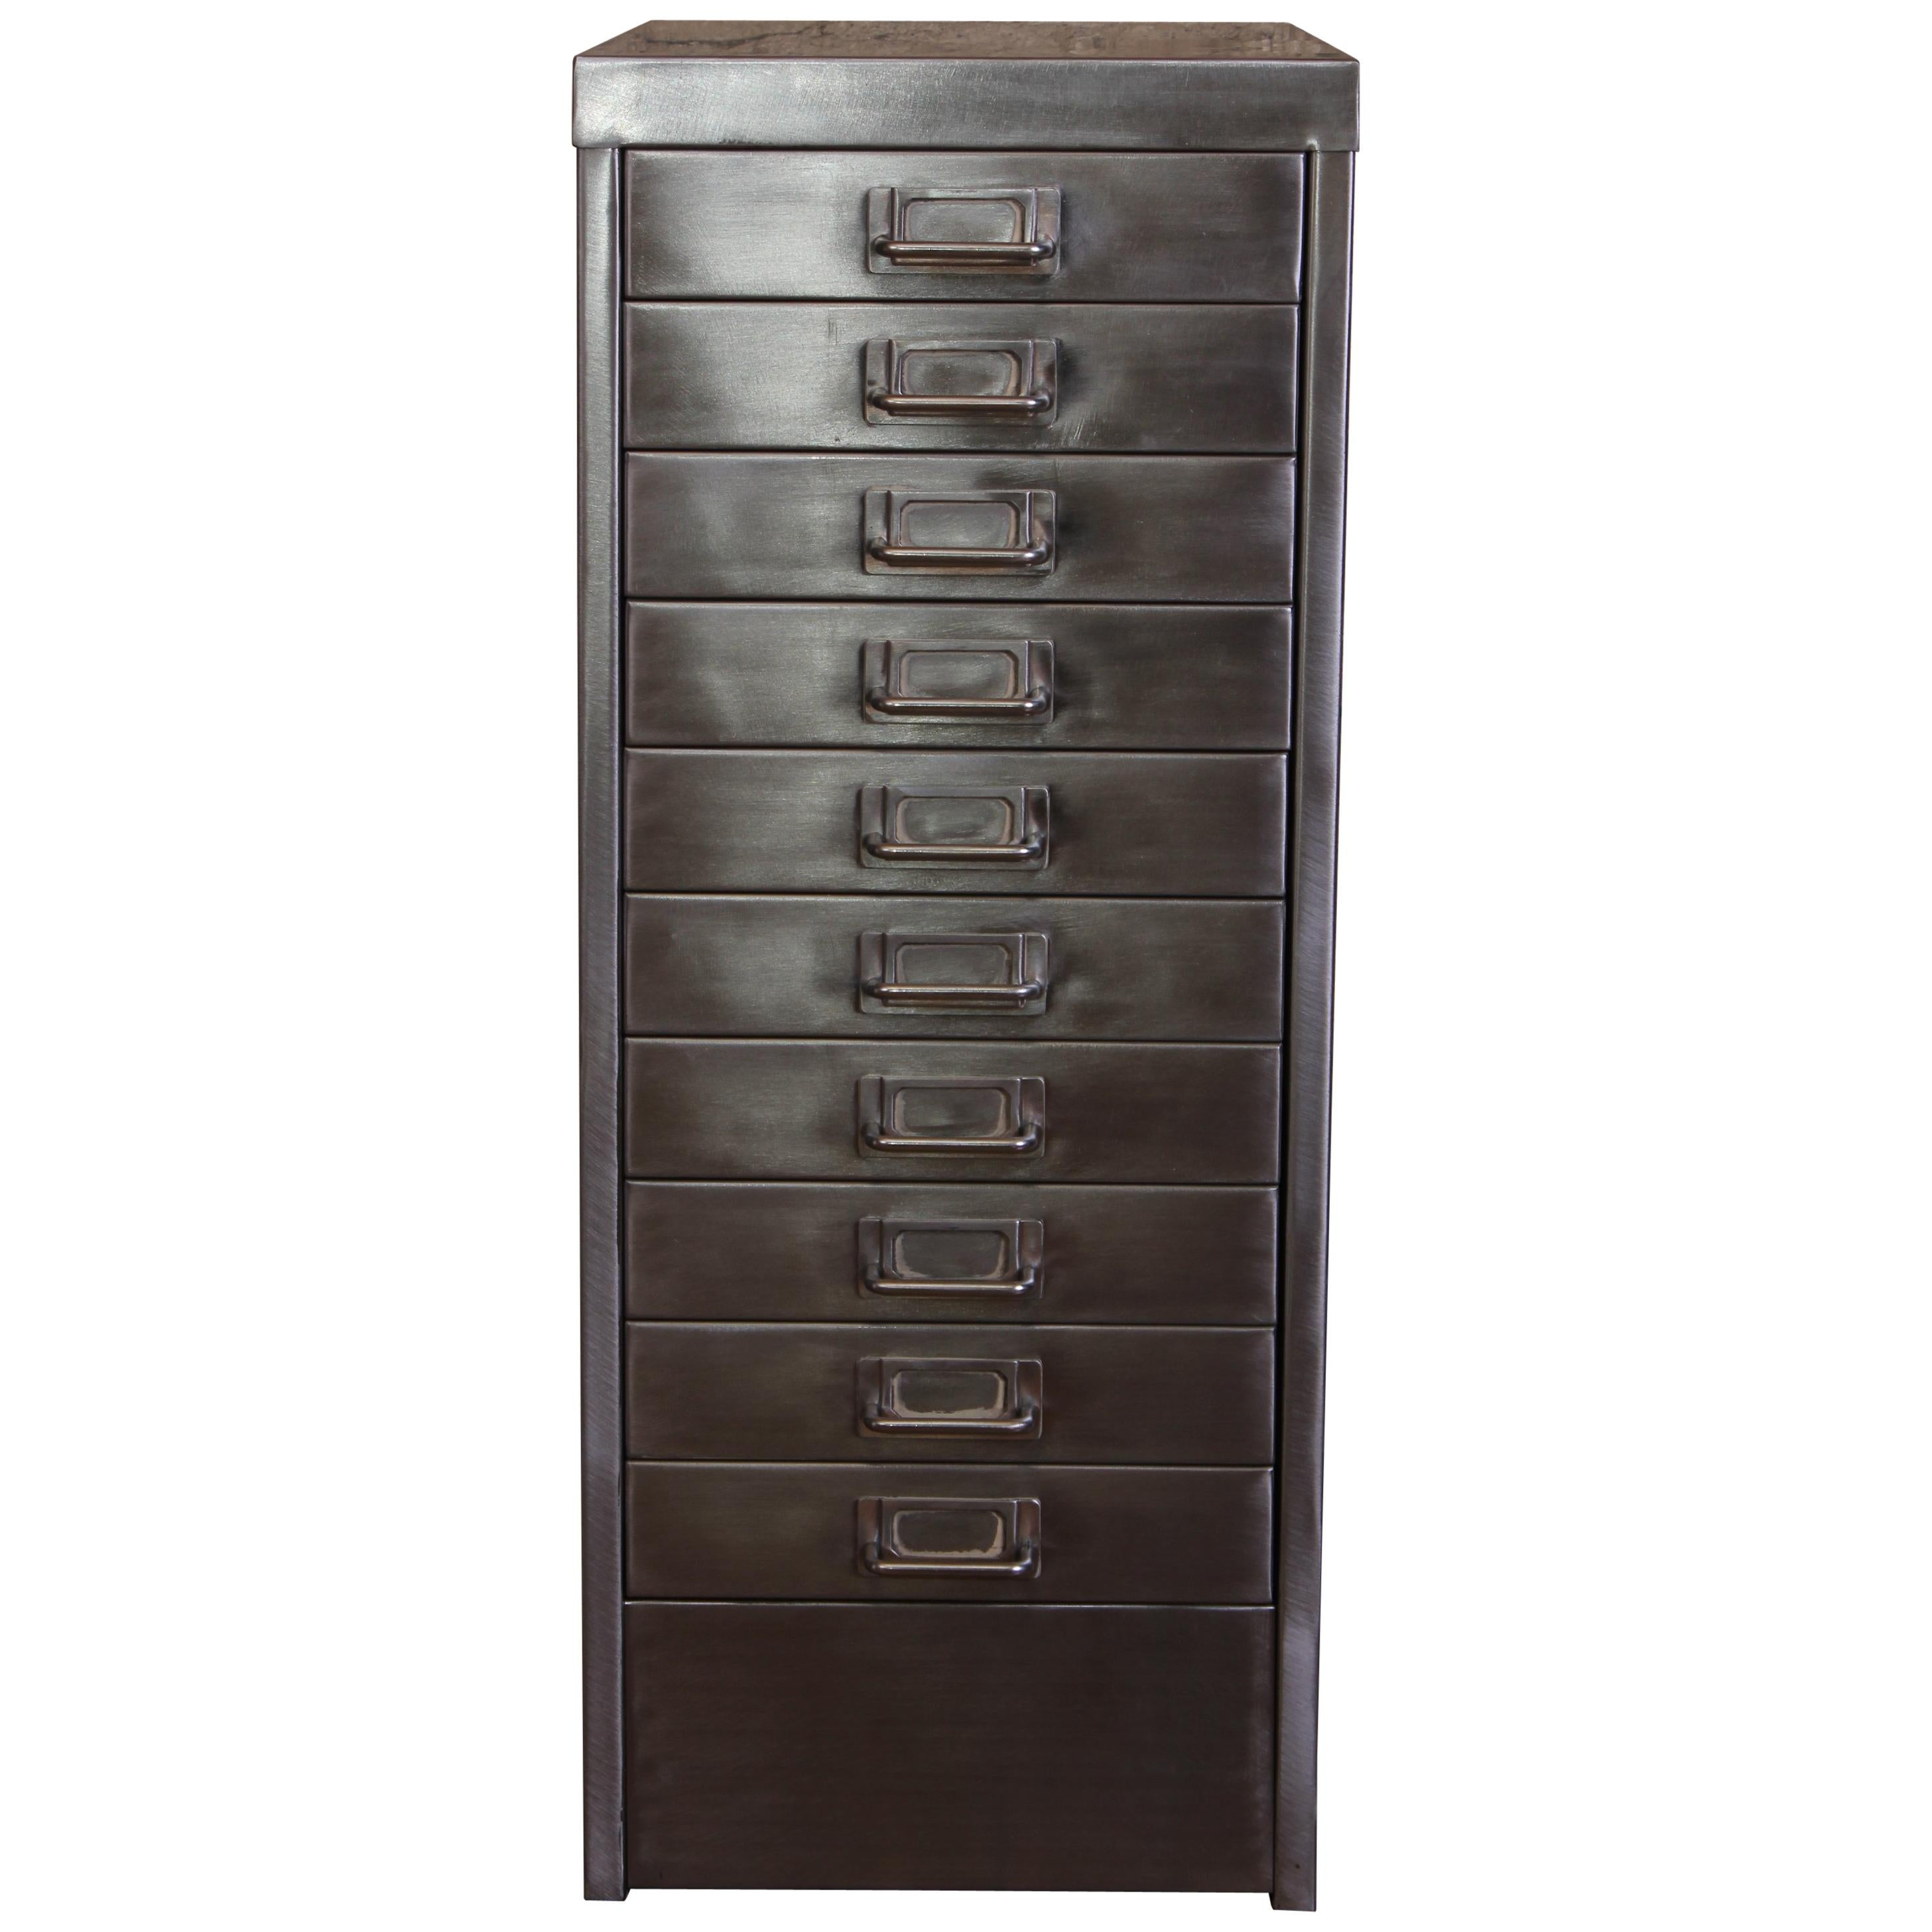 Merveilleux Industrial Stripped Metal 10 Drawer Filing Cabinet A4 Letter Size For Sale  At 1stdibs